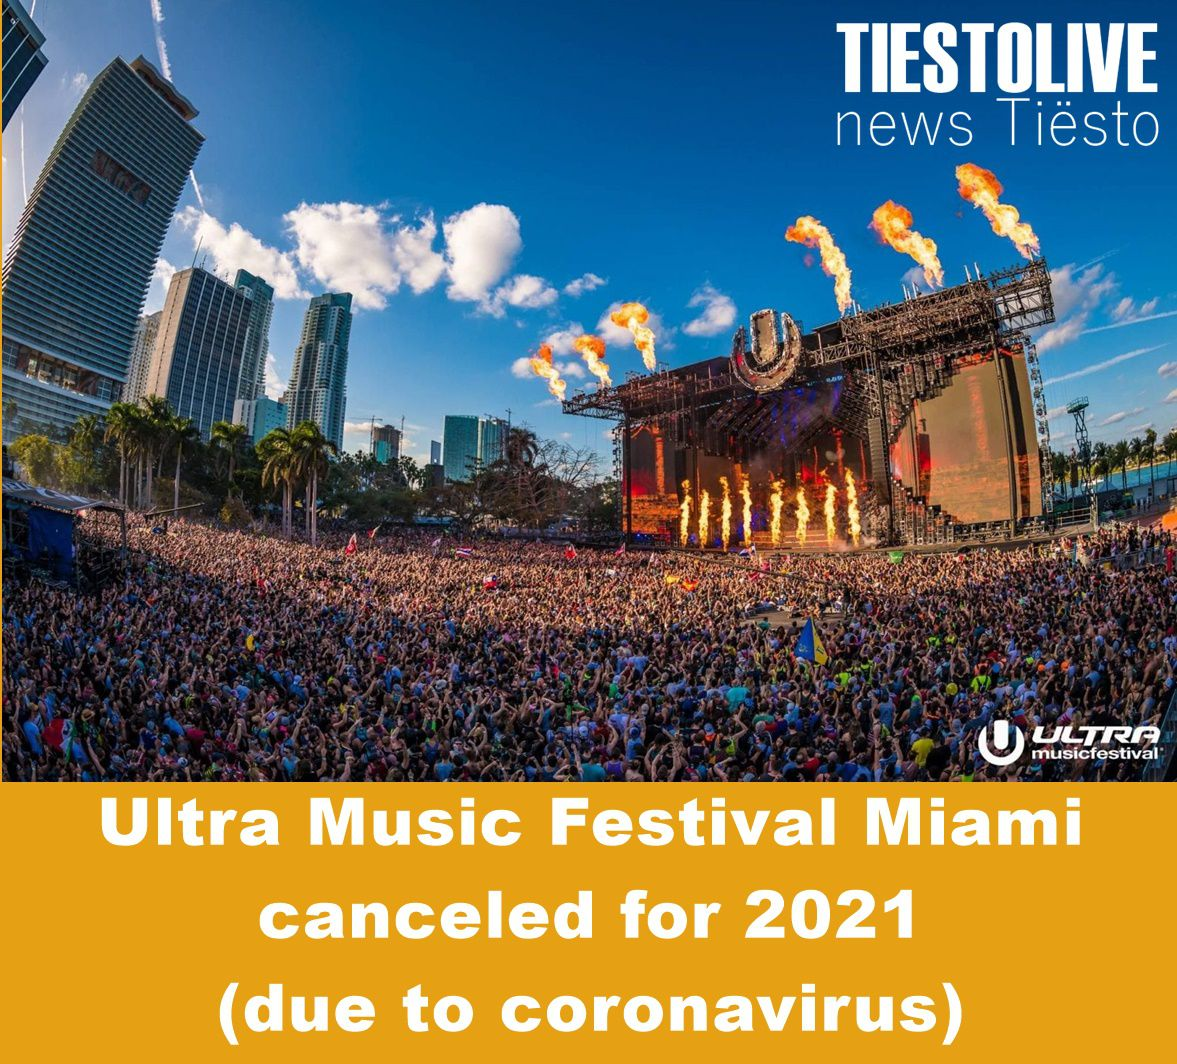 no Ultra Music Festival Miami in 2021, for the 2nd year ! ( due to coronavirus)